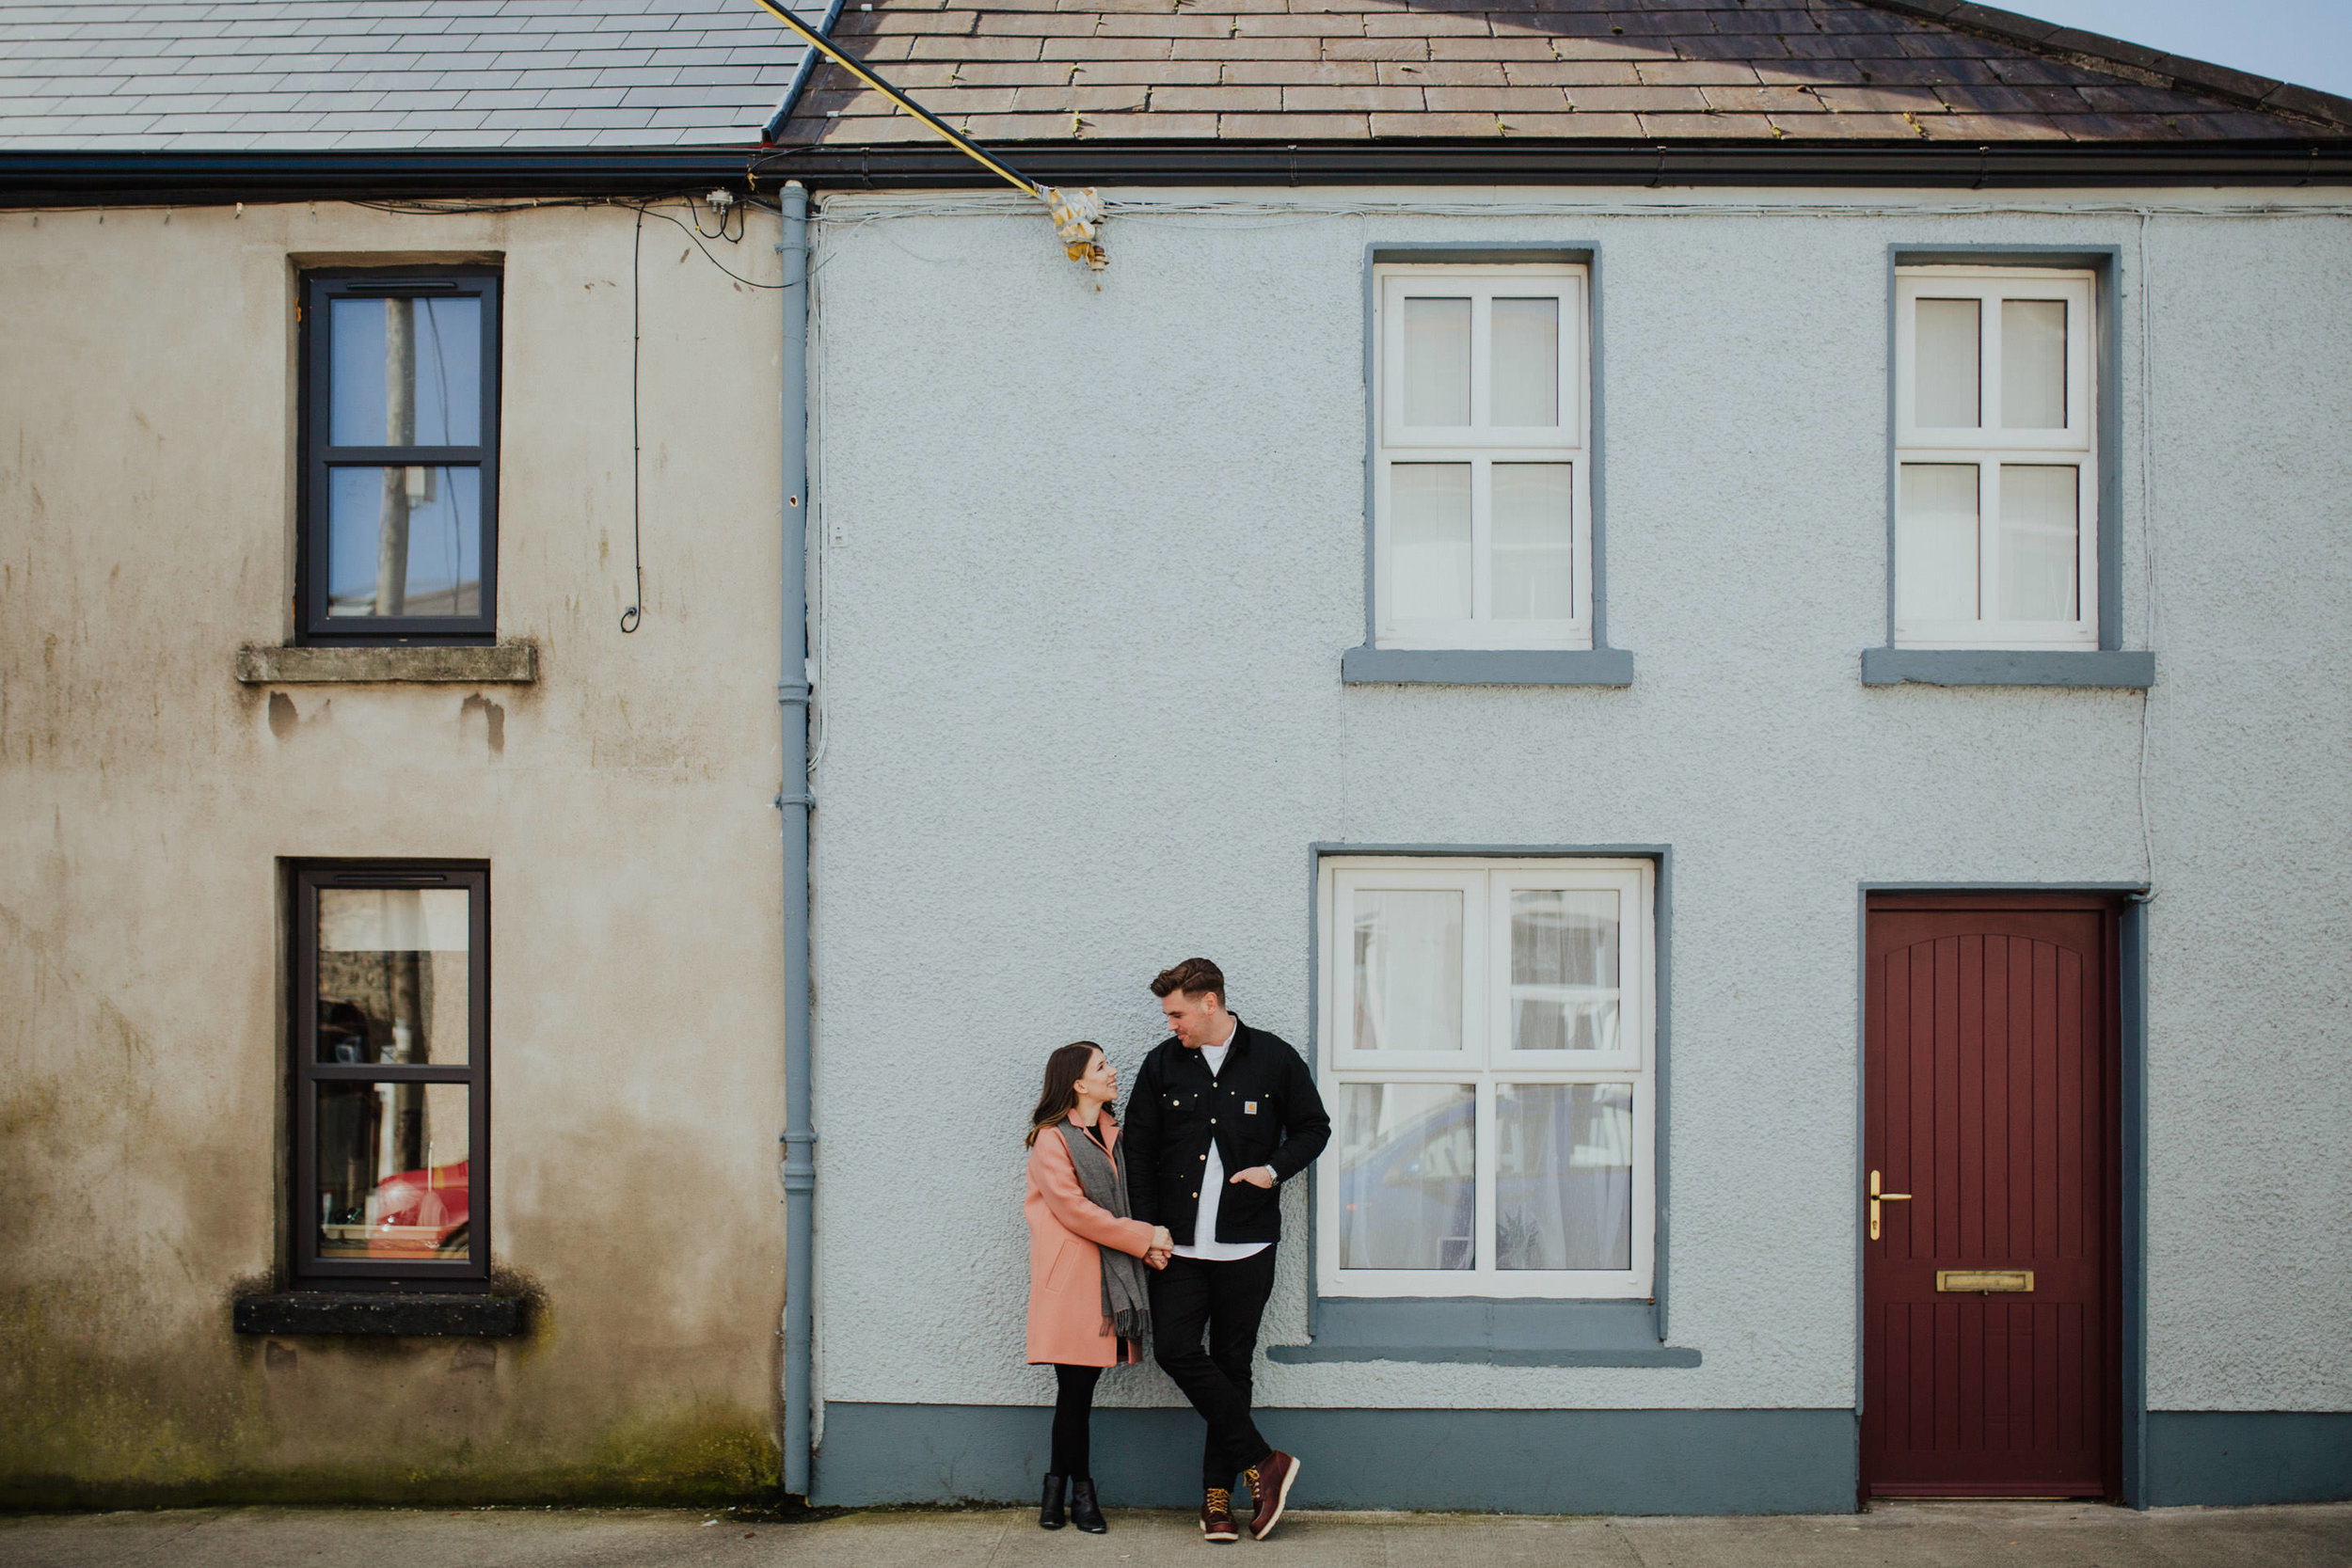 galway_city_engagement_photos_liviafigueiredo_62.jpg